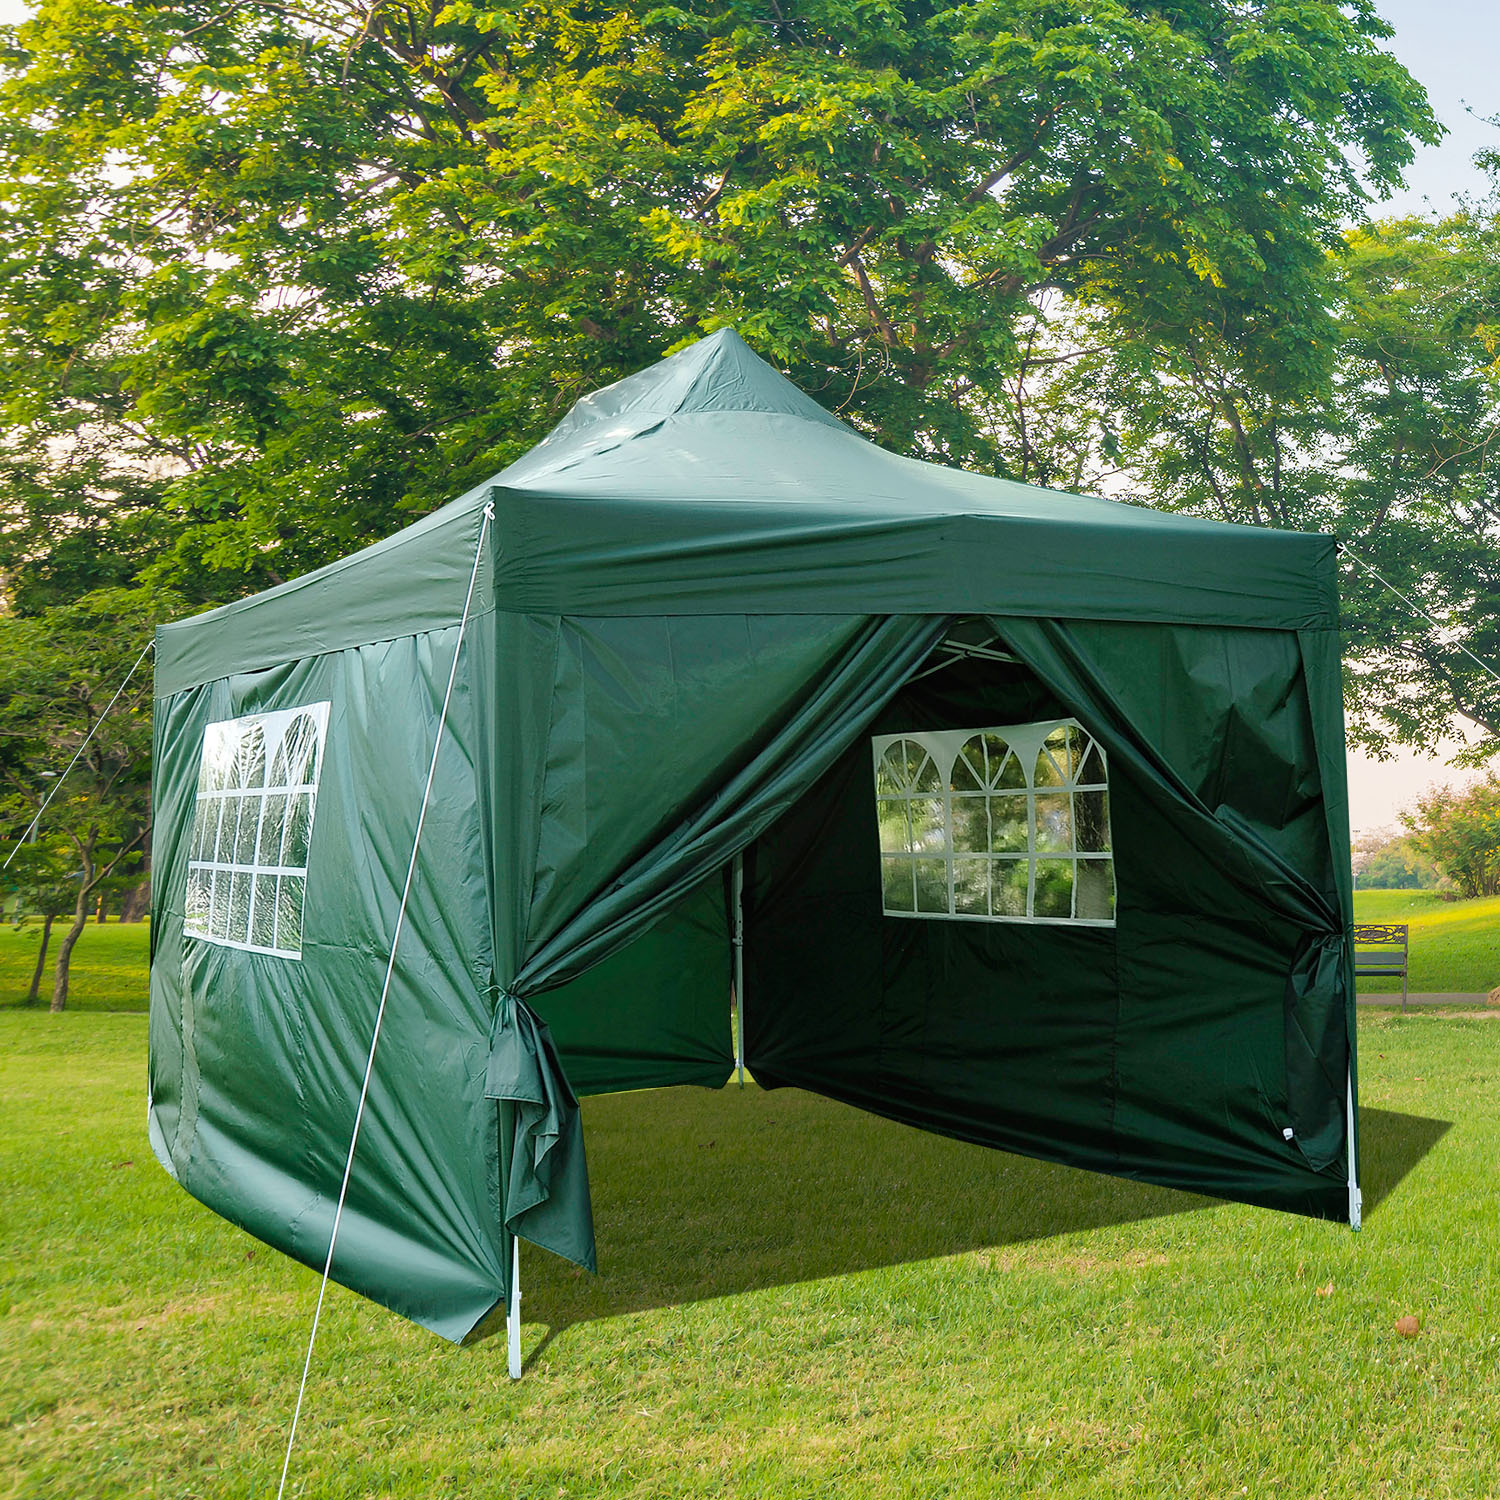 Image of CAD $134.99 Outsunny 10x15ft Pop Up Party Tent Gazebo Wedding Canopy Outdoor w/ Sidewalls and Carrying Bag Green / Portable Folding with Carry Case Marquee Pavilion Canada 25093584275